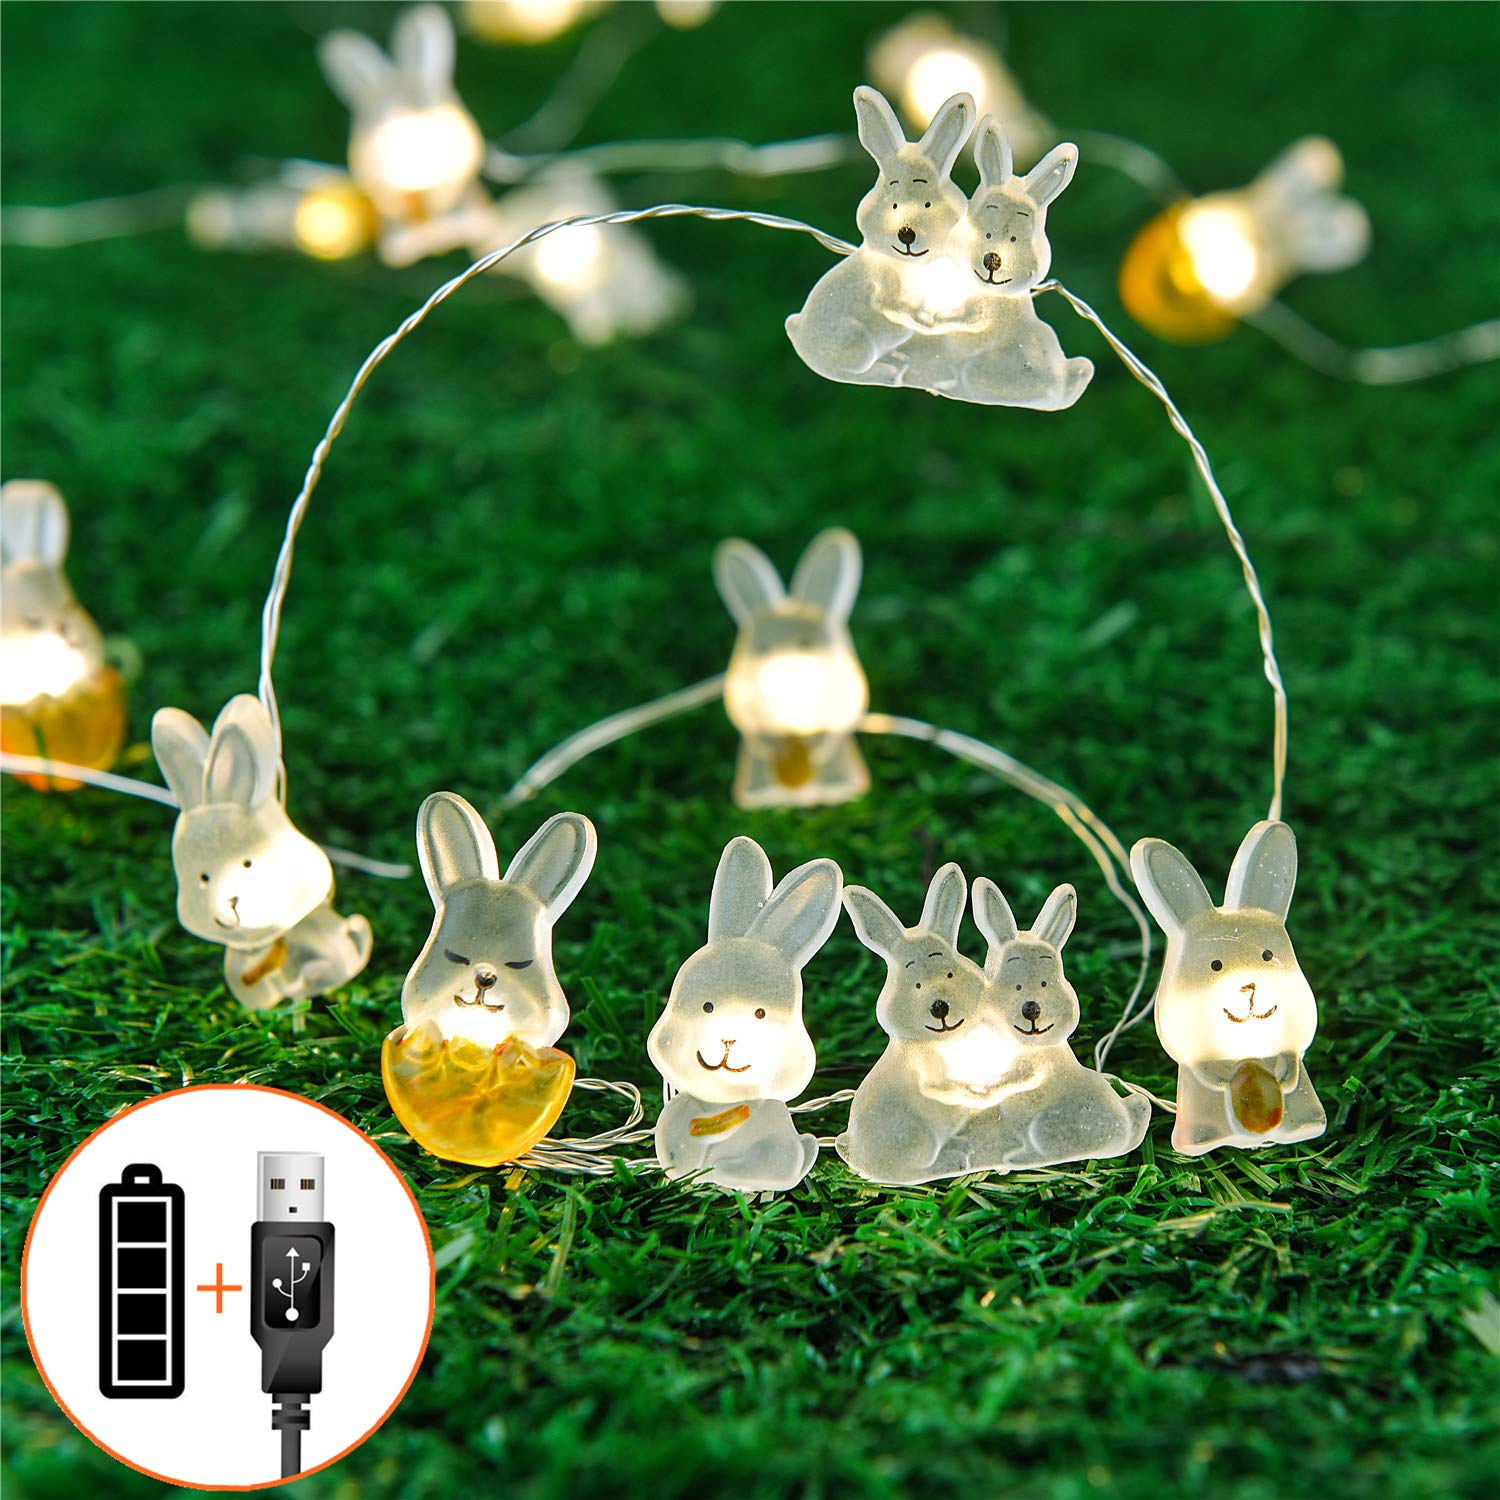 Easter decorations decor easter bunny spring rabbit led lights string lights battery operated for indoor outdoor bedroom table centerpieces easter tree